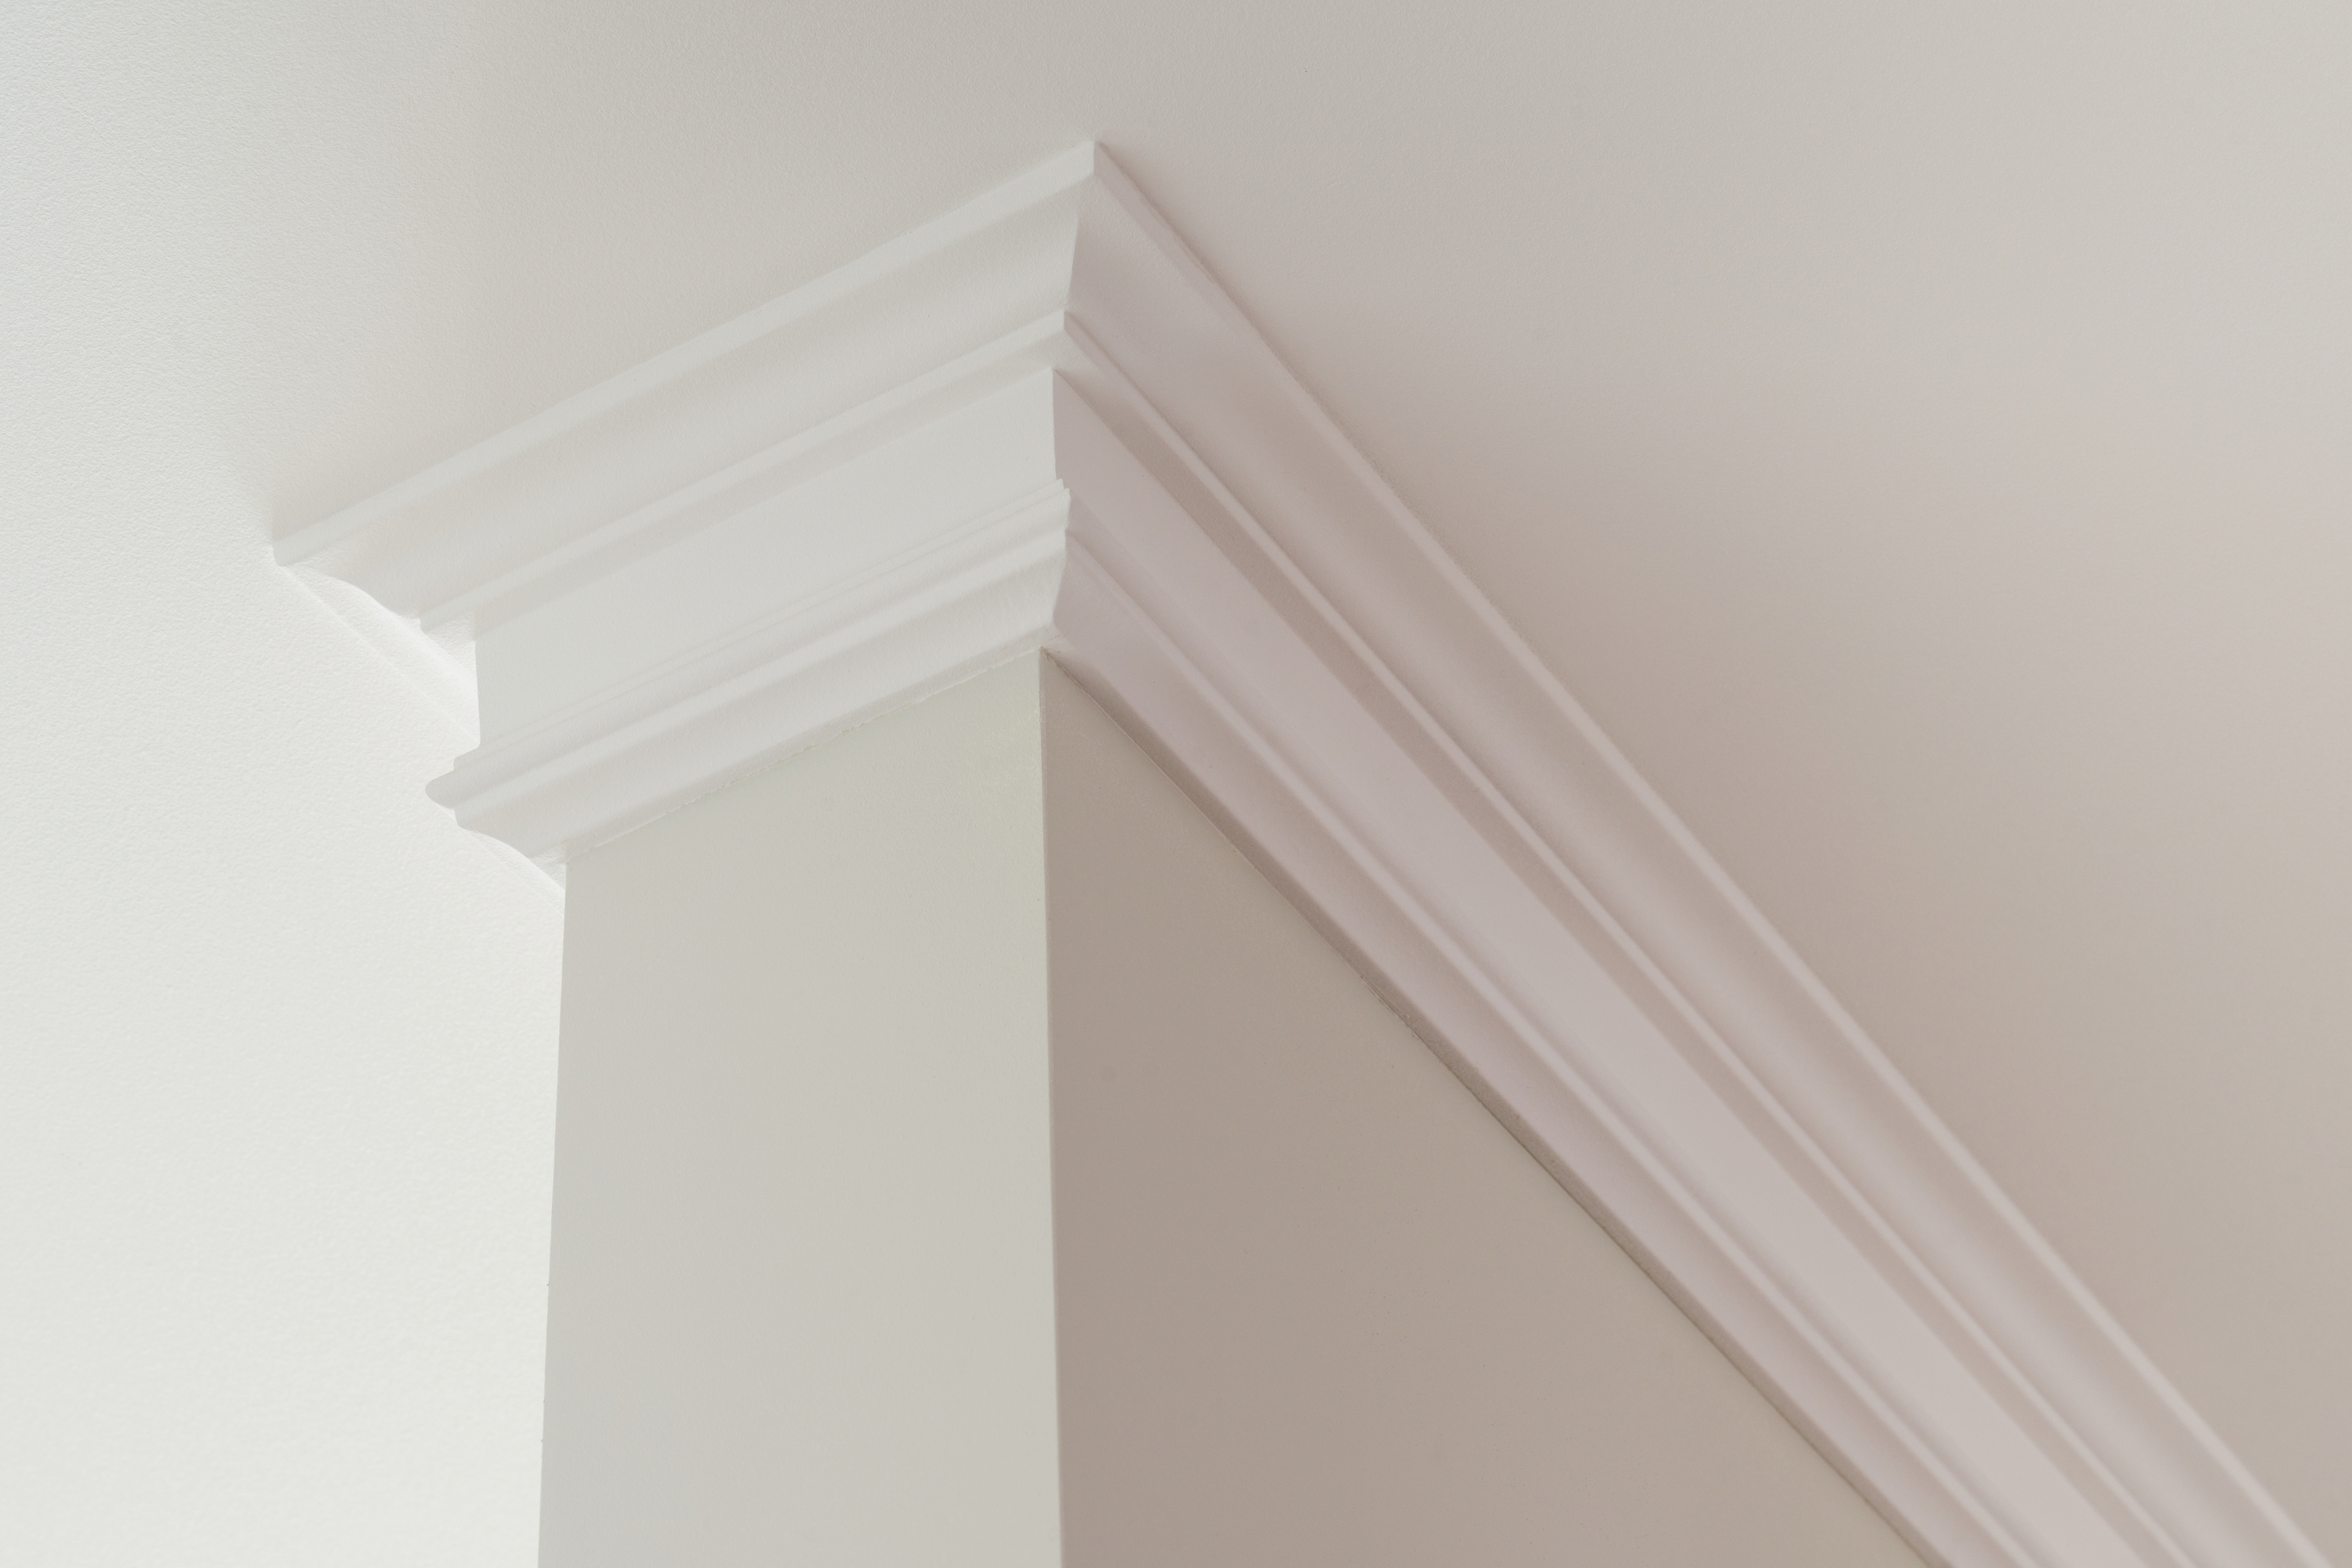 cut crown molding | how to | how to cut crown molding | crown molding | woodwork | home design | molding